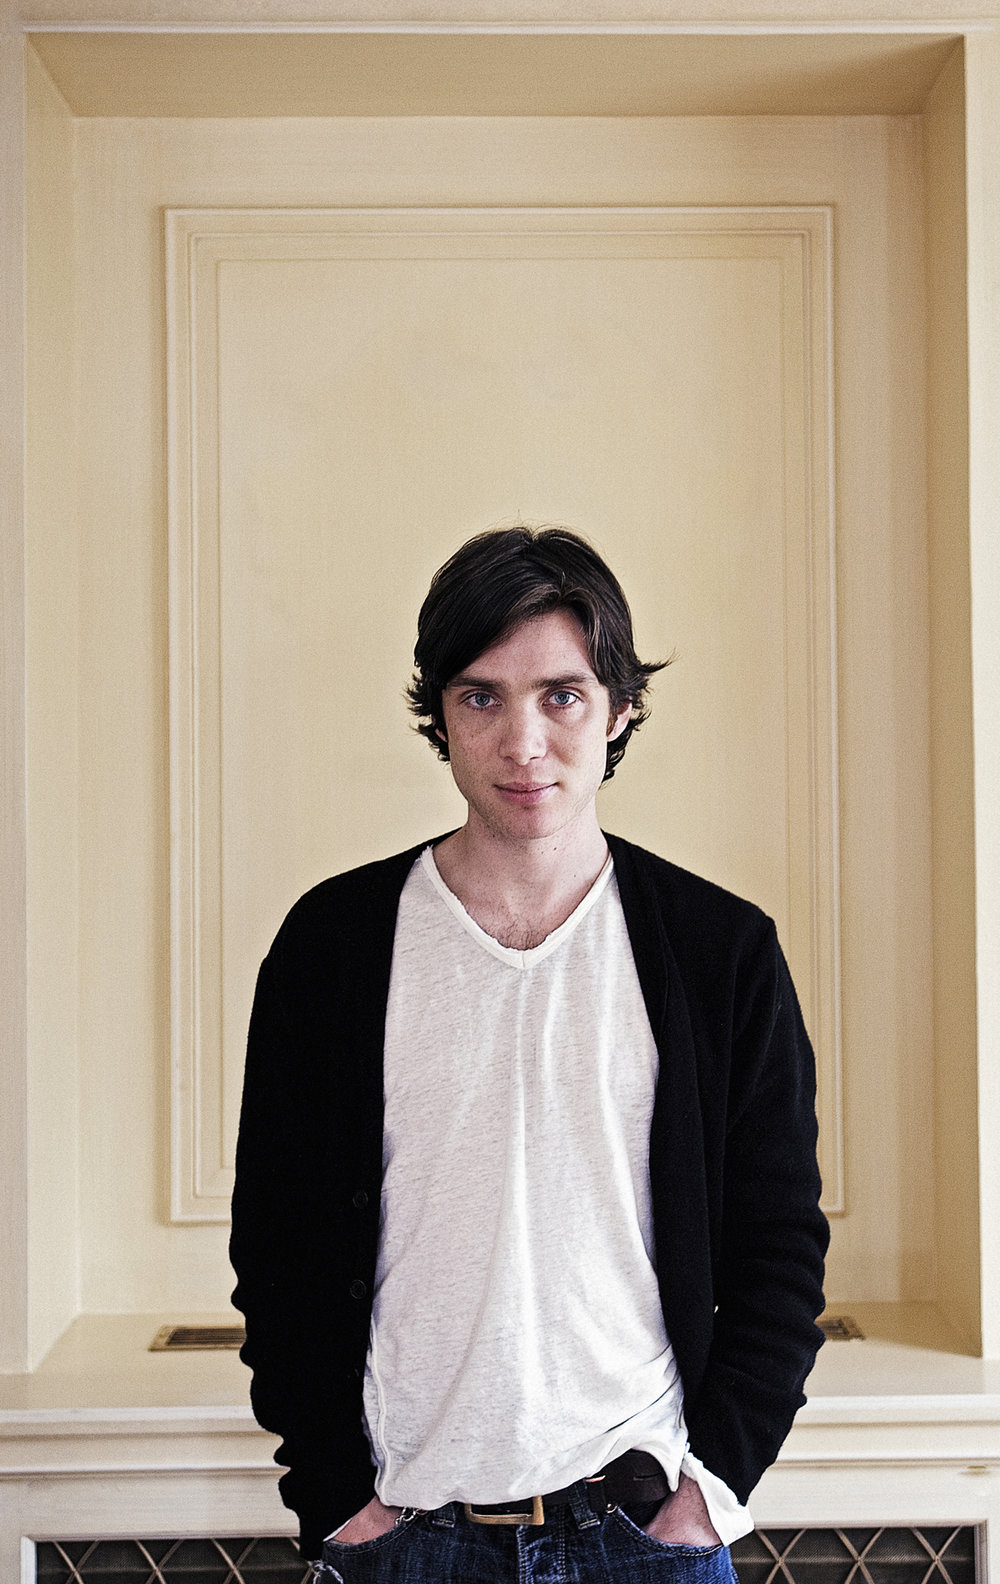 Cillian Murphy, Irish actor